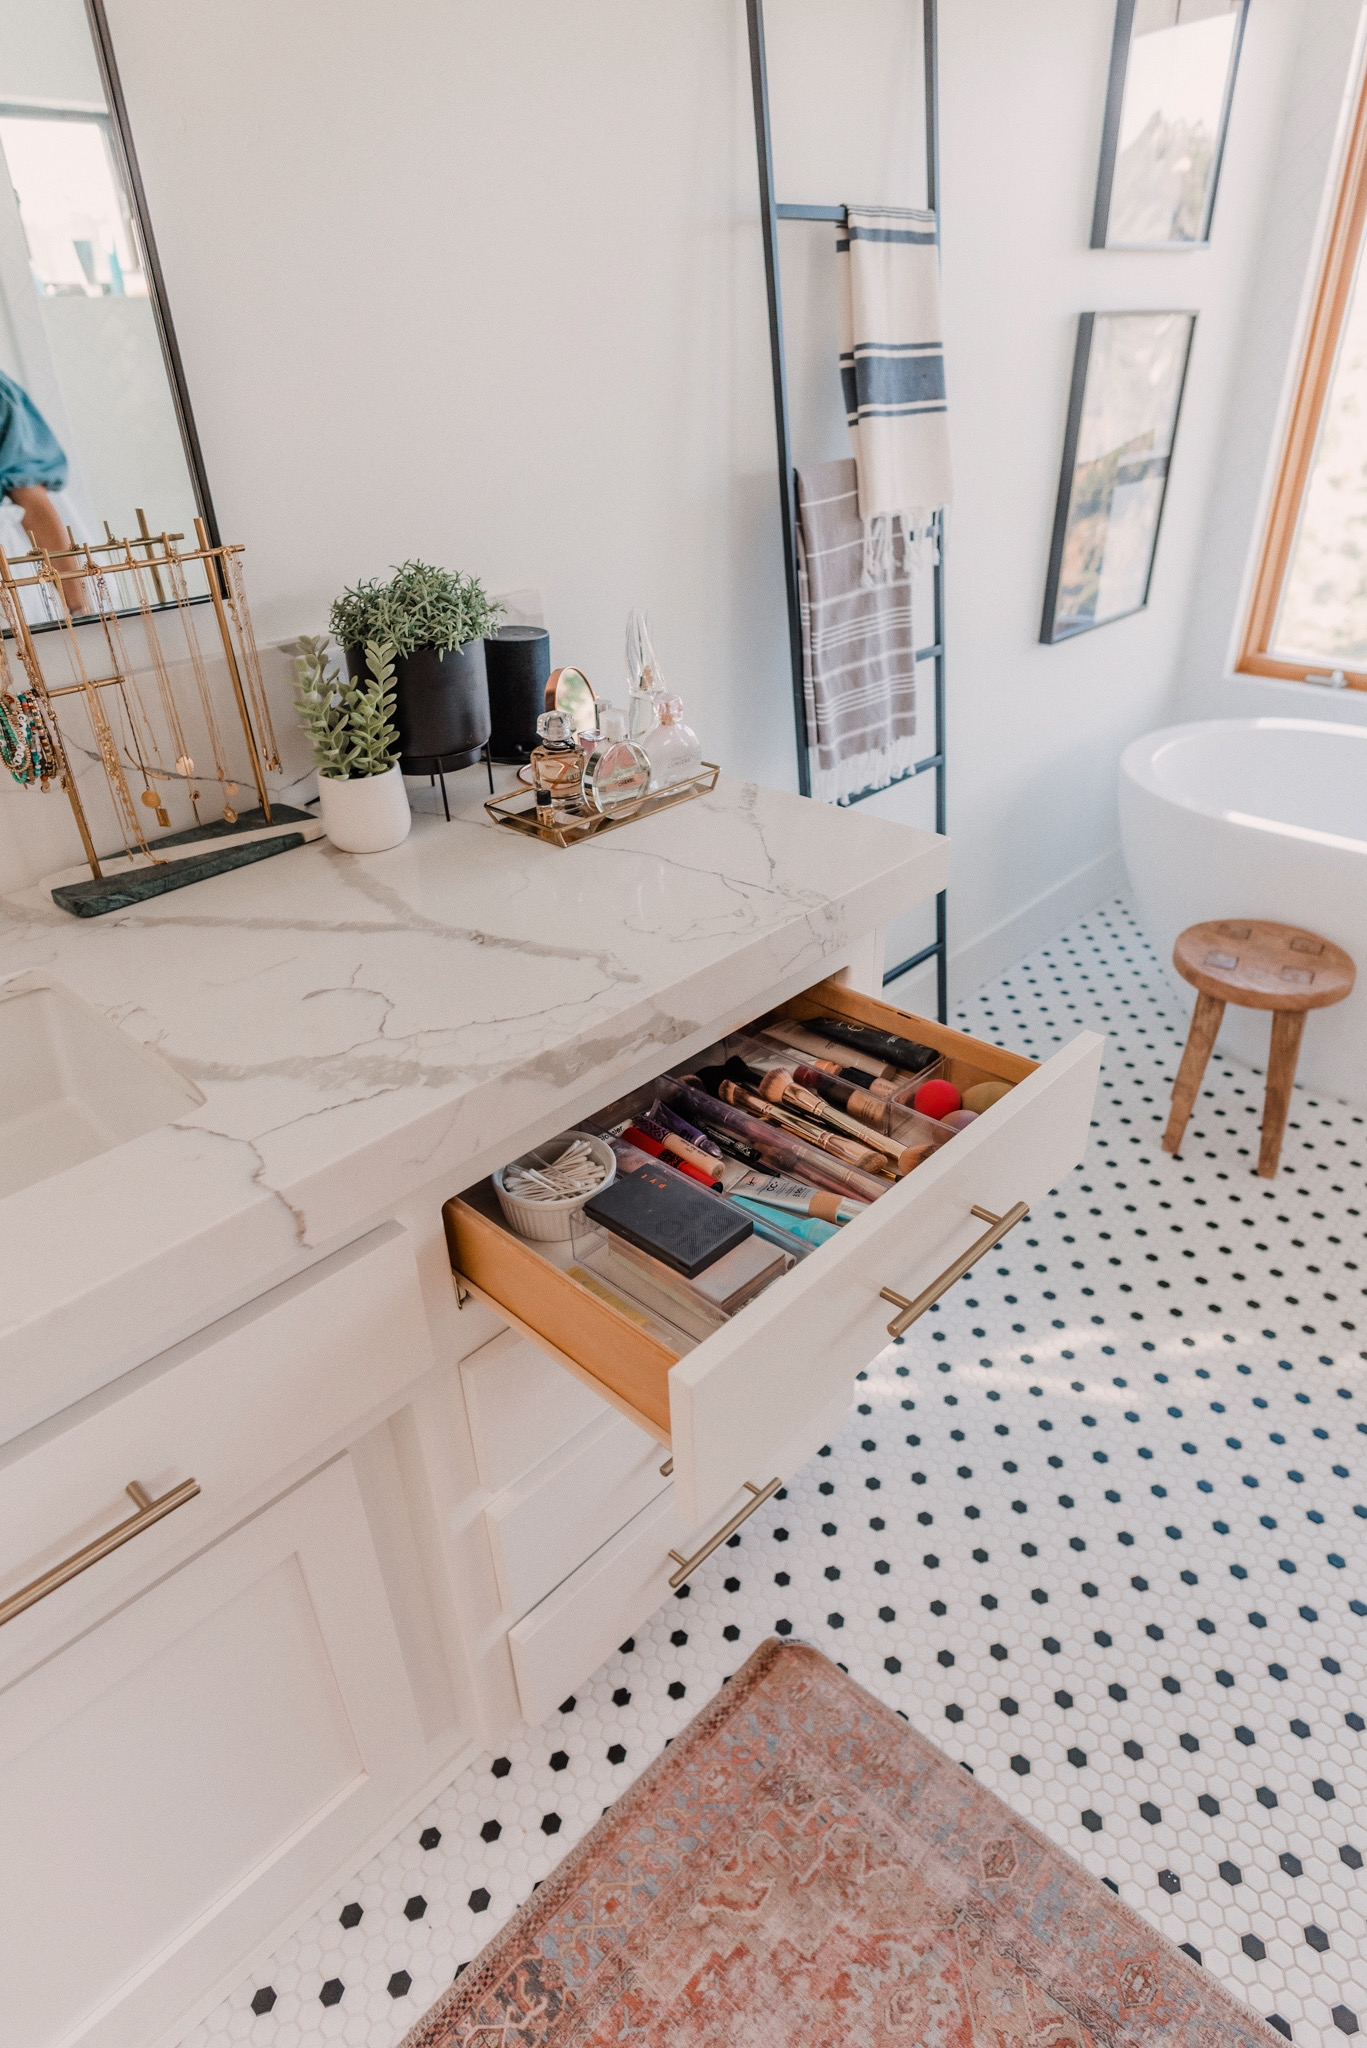 Kitchen Organization Products by popular San Diego life and style blog, Navy Grace: image of a organized makeup drawer in a bathroom vanity.